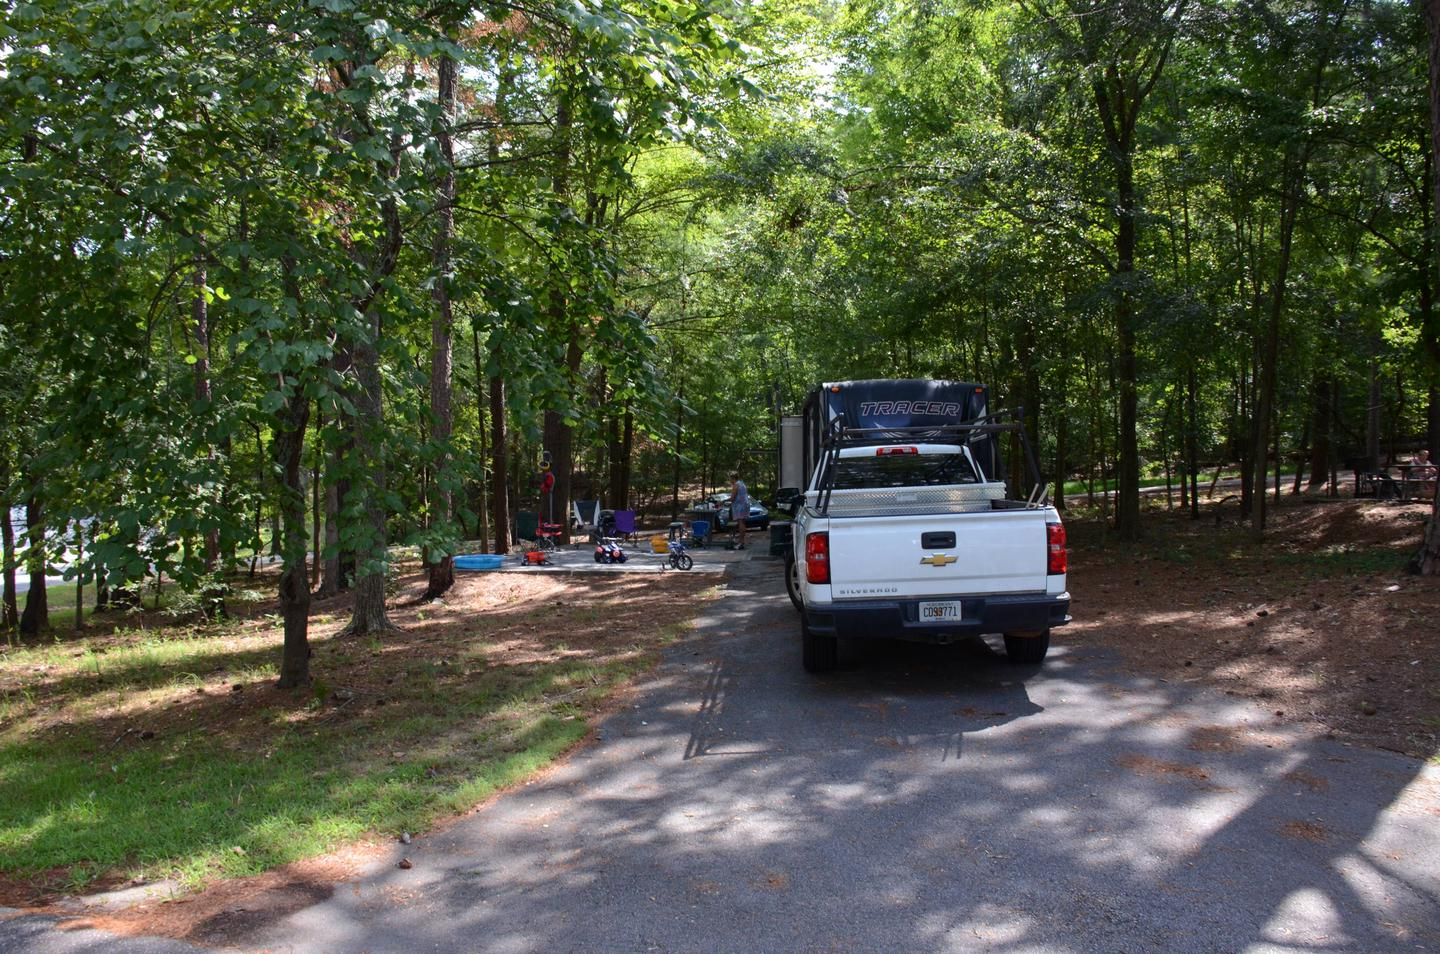 Pull-thru exit, driveway slope, awning-side clearance.McKinney Campground, campsite 31.